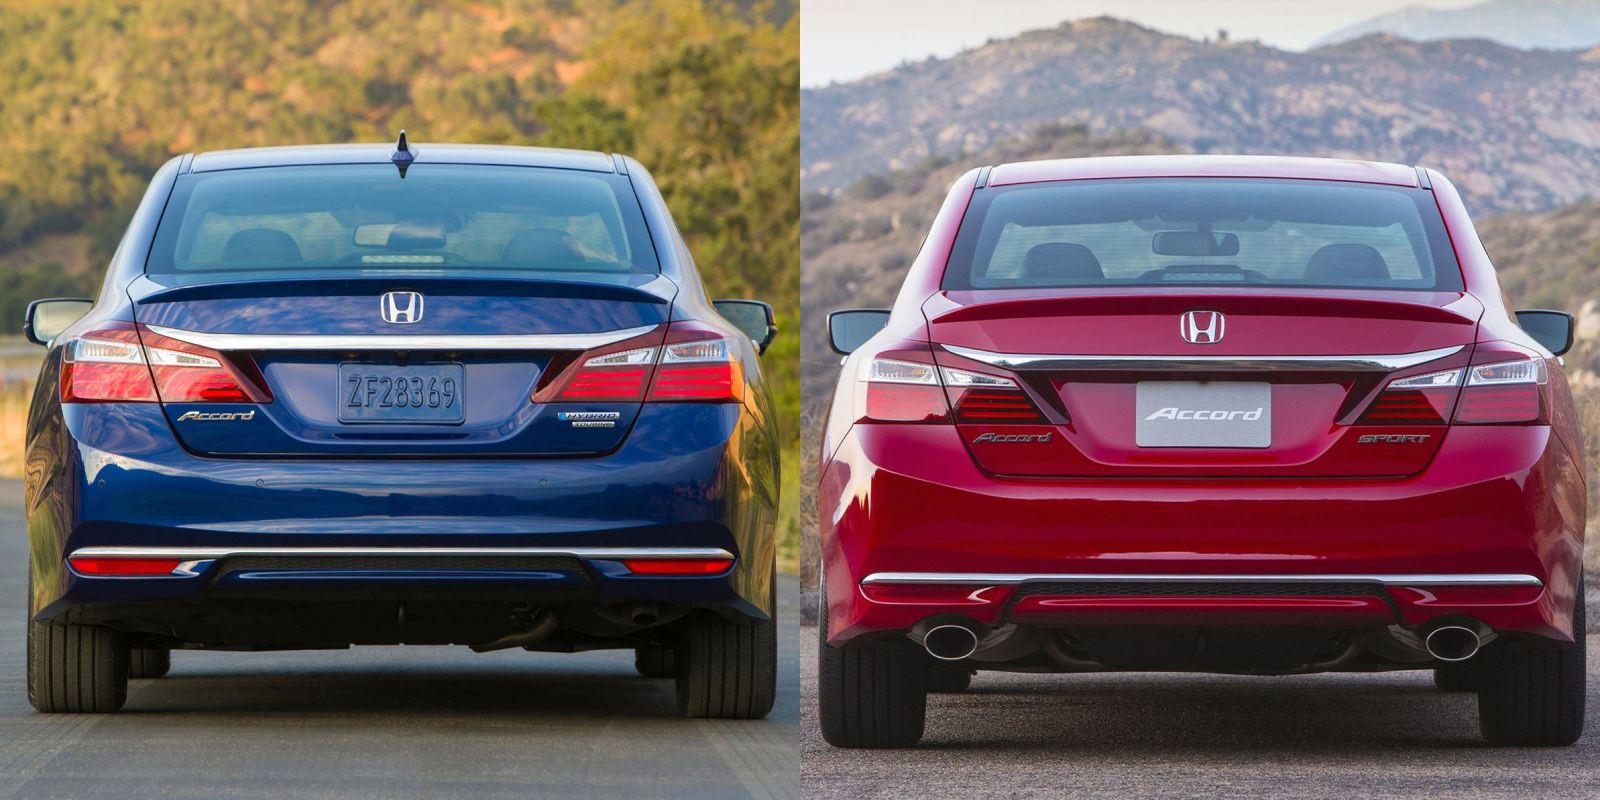 Accord Sport or Accord Hybrid: Which One Is Actually Cooler?